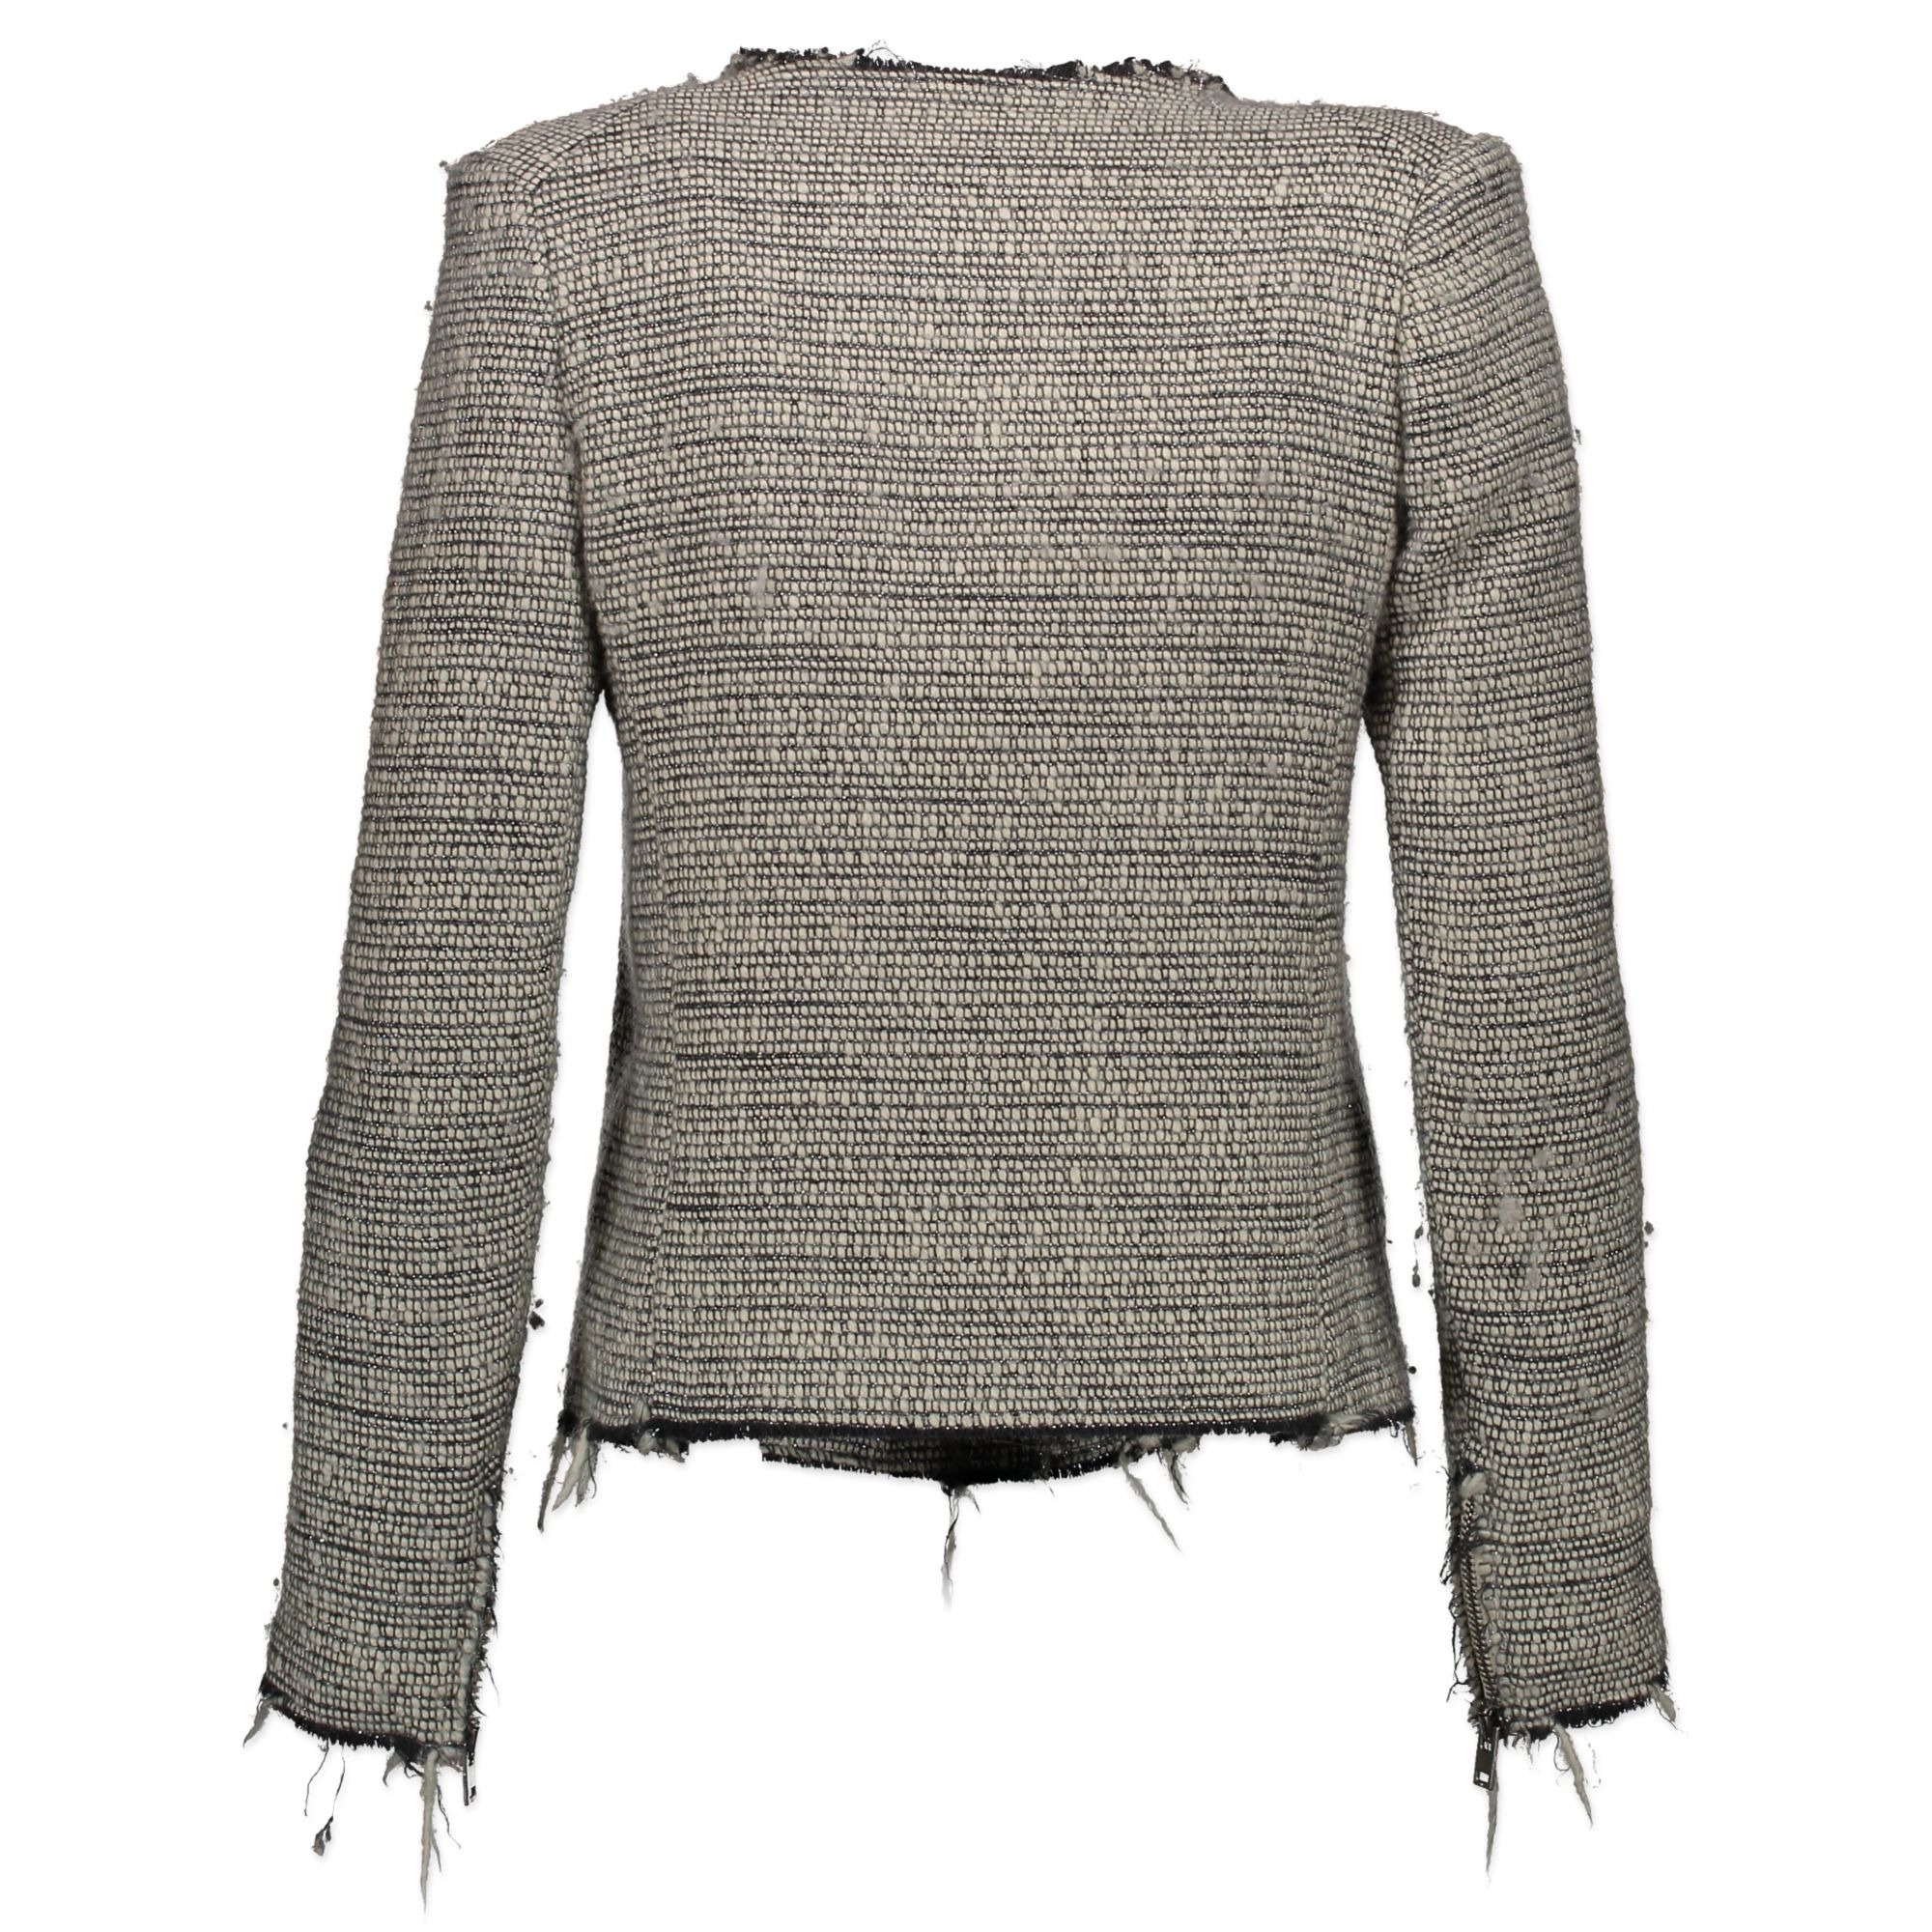 Buy authentic iro jacket For the right price at Labellov. Safe and secure shopping. Vintage fashion.